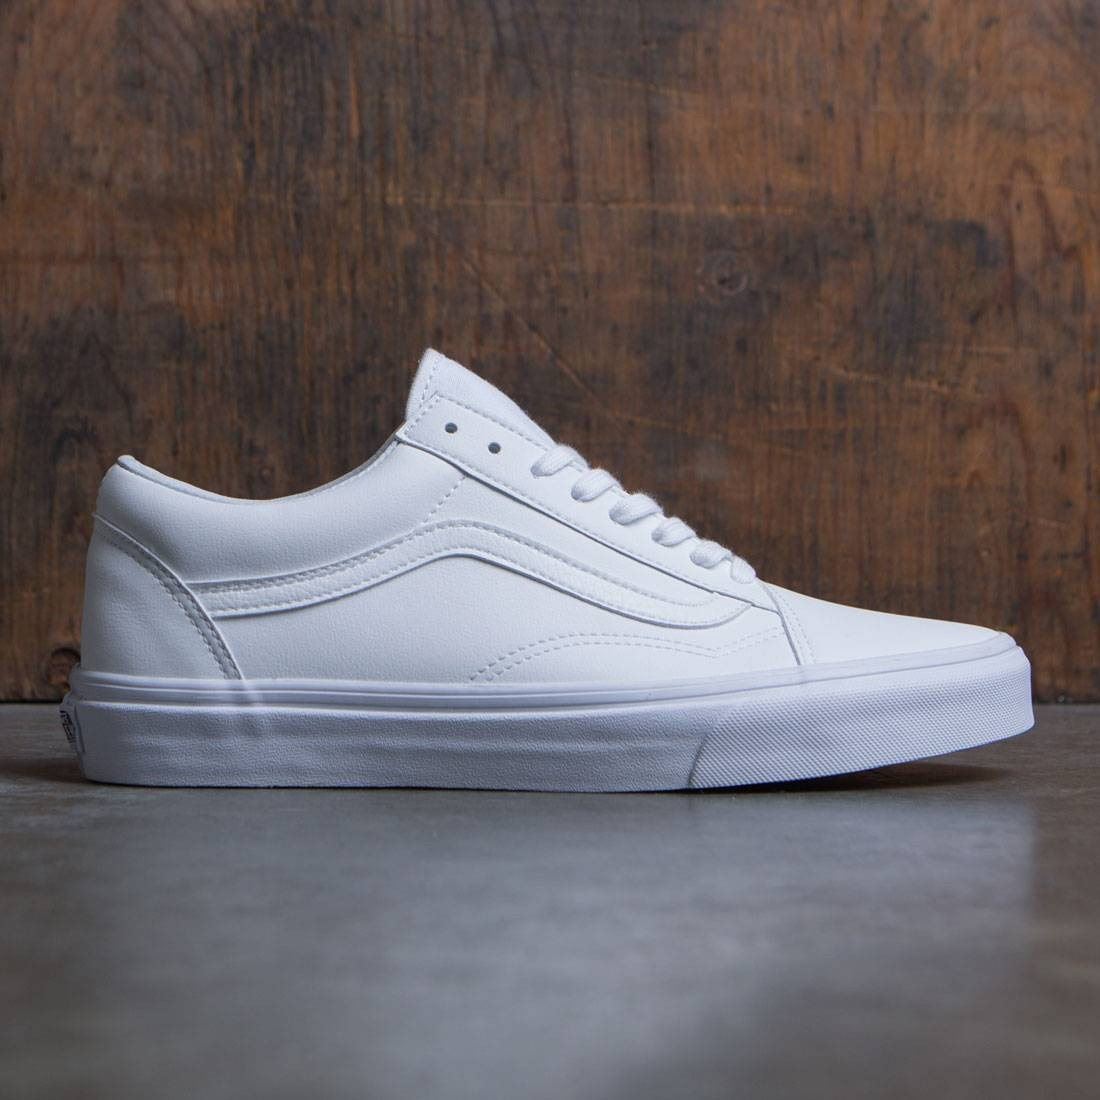 640a016f9a Vans Men Old Skool white classic tumble